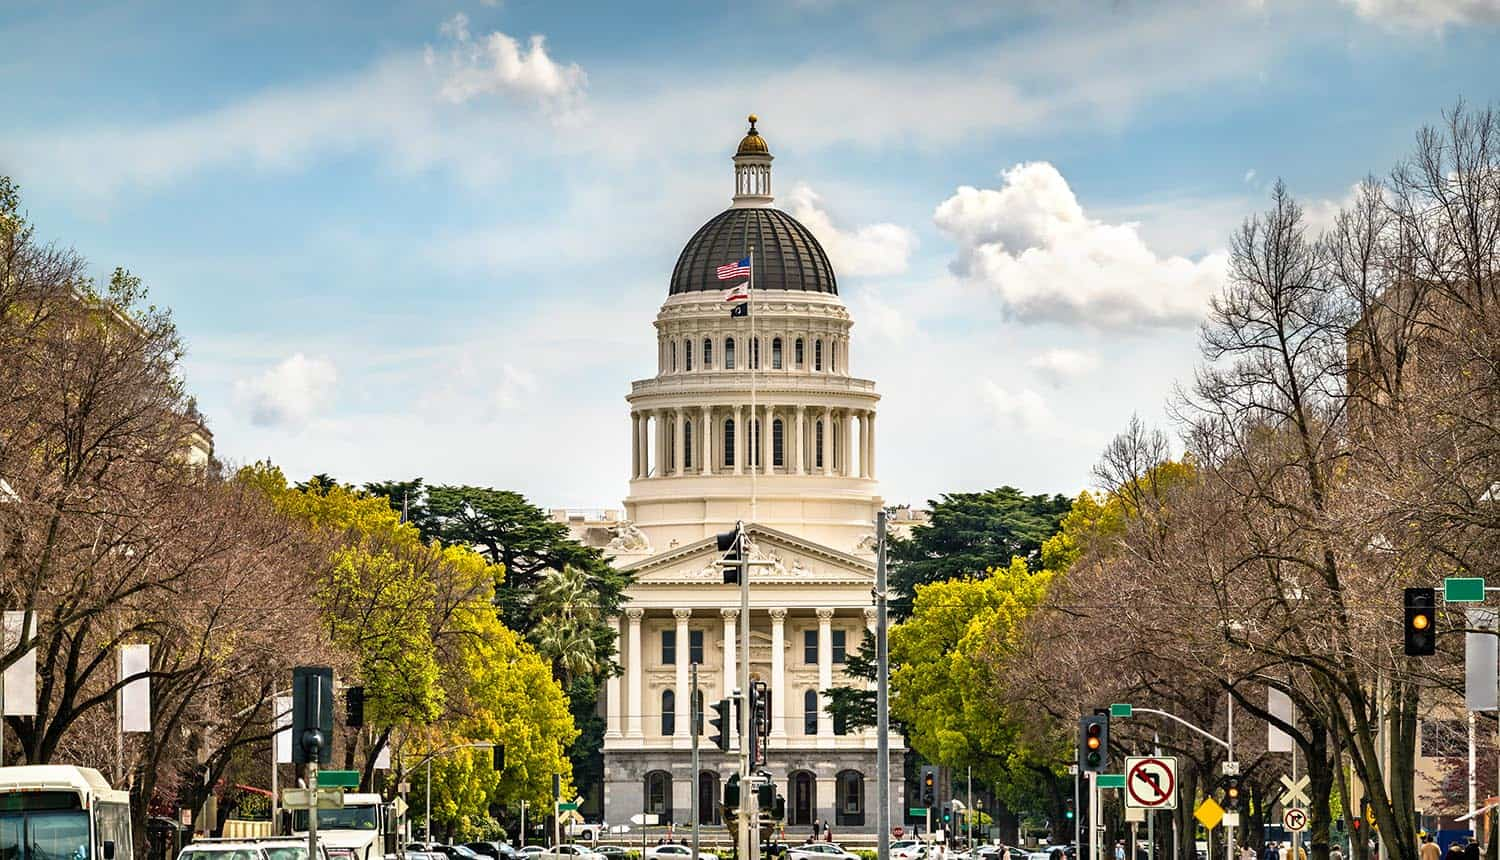 California state capitol building in Sacramento showing ban of dark patterns in privacy law